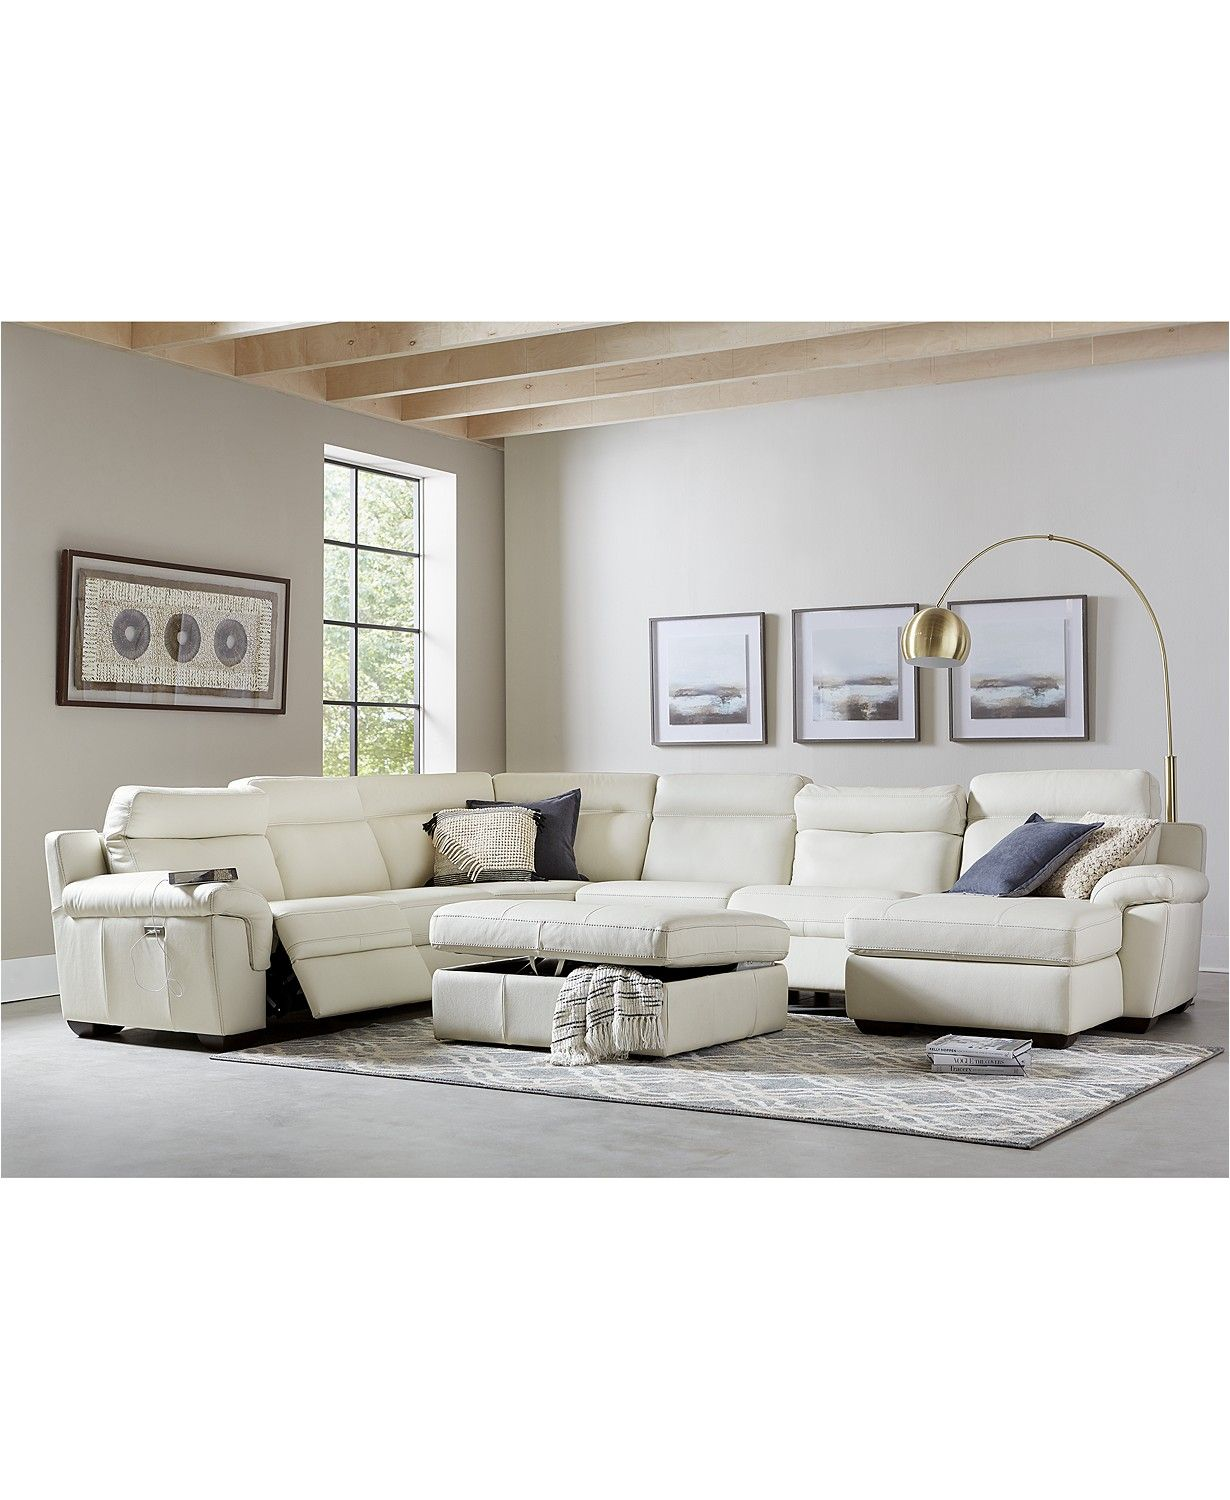 Super Julius Ii 6 Pc Leather Sectional Sofa With 3 Power Spiritservingveterans Wood Chair Design Ideas Spiritservingveteransorg